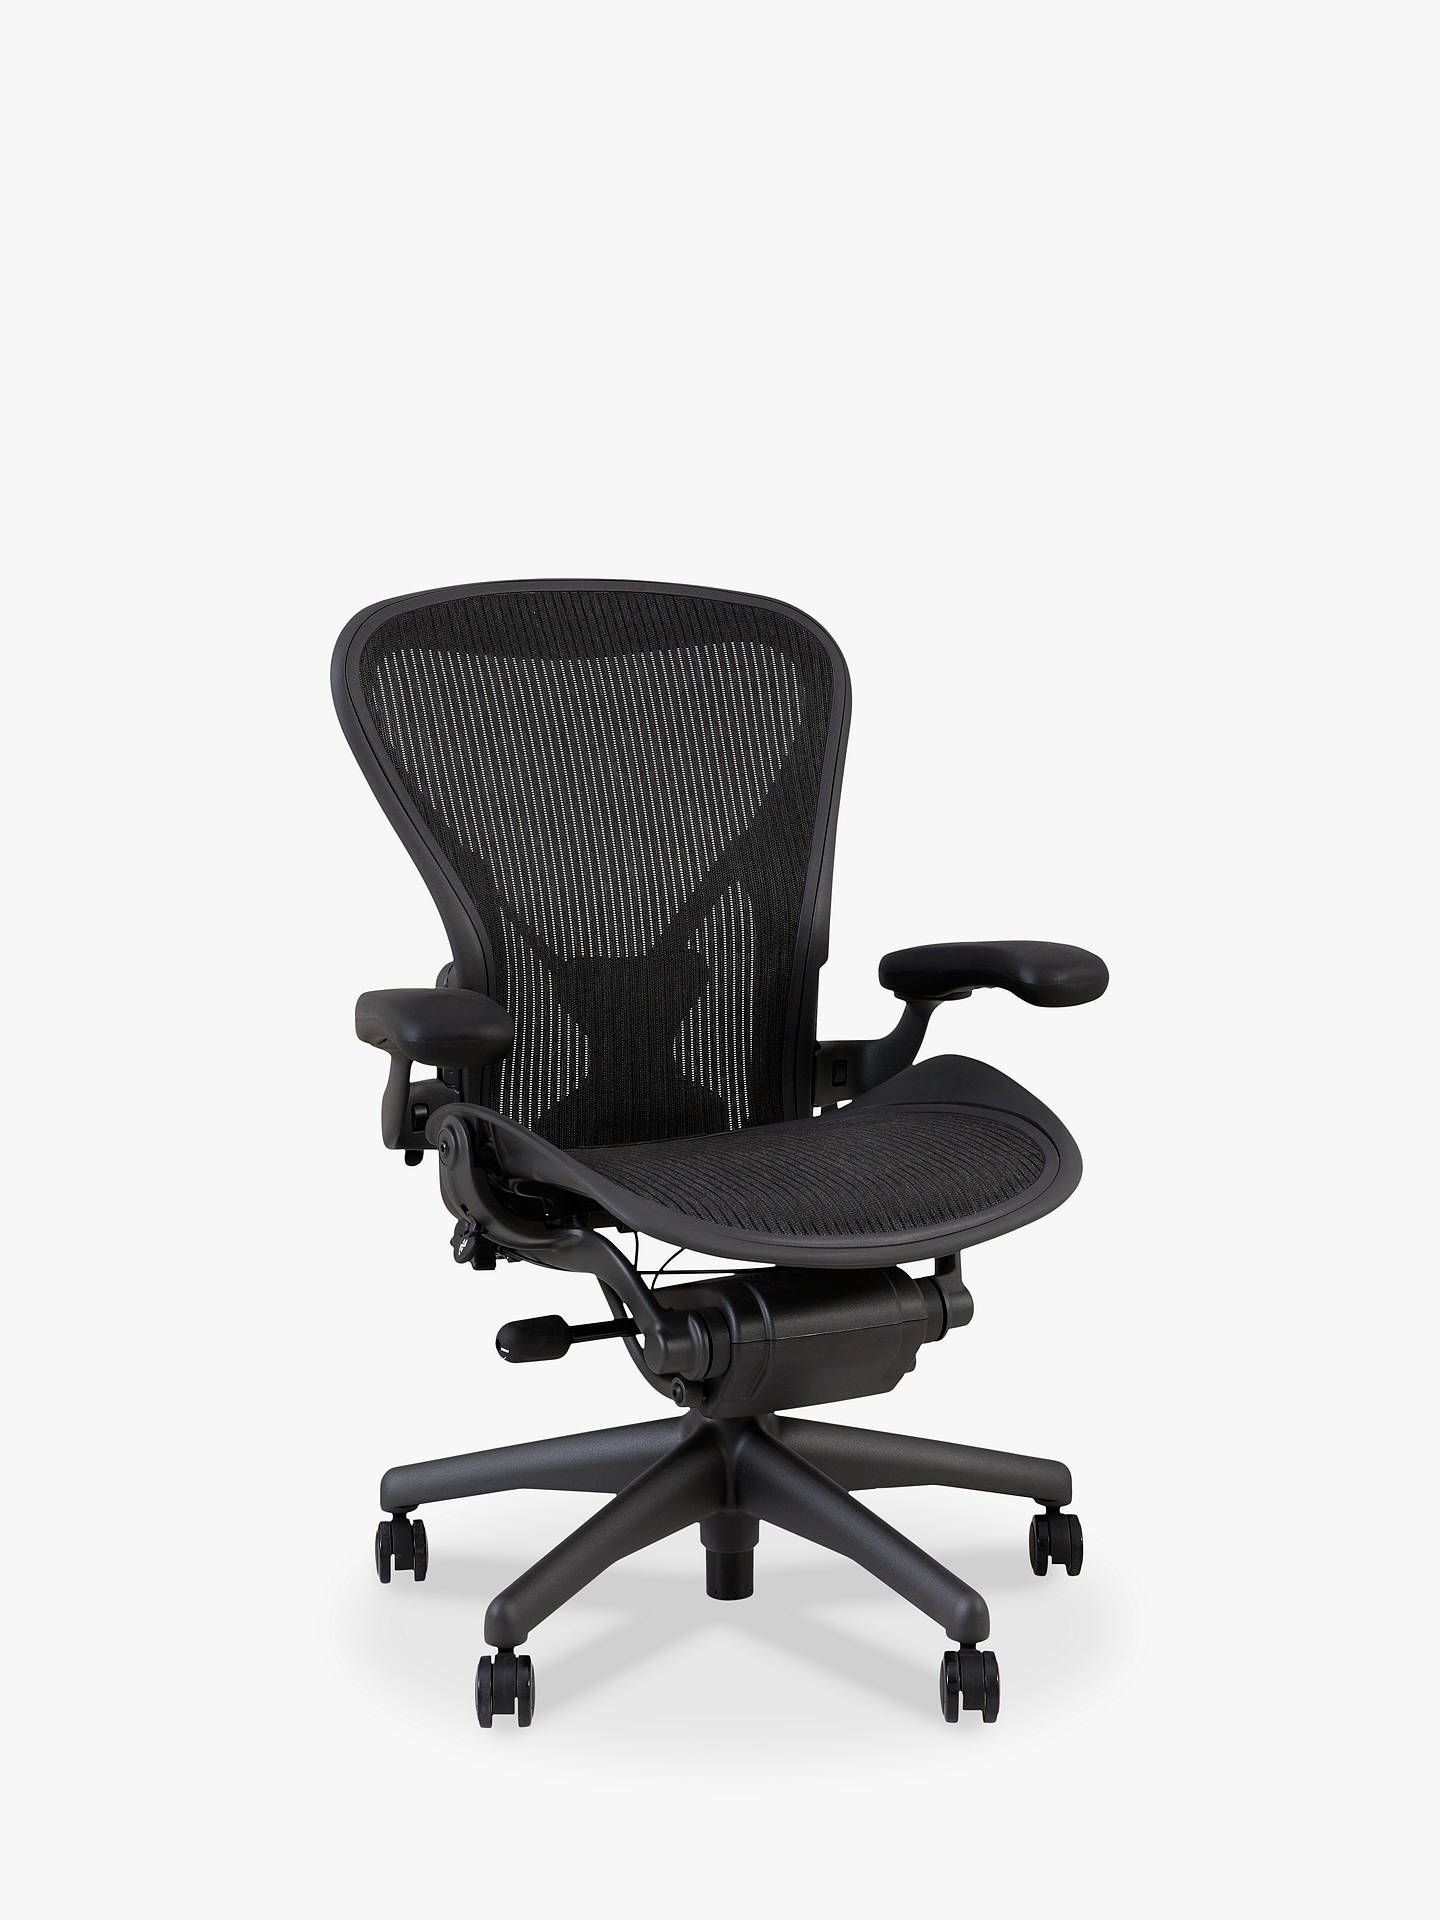 BuyHerman Miller Classic Aeron Office Chair Size B Graphite Online at johnlewis.com ...  sc 1 st  John Lewis : aeron miller chair - Cheerinfomania.Com